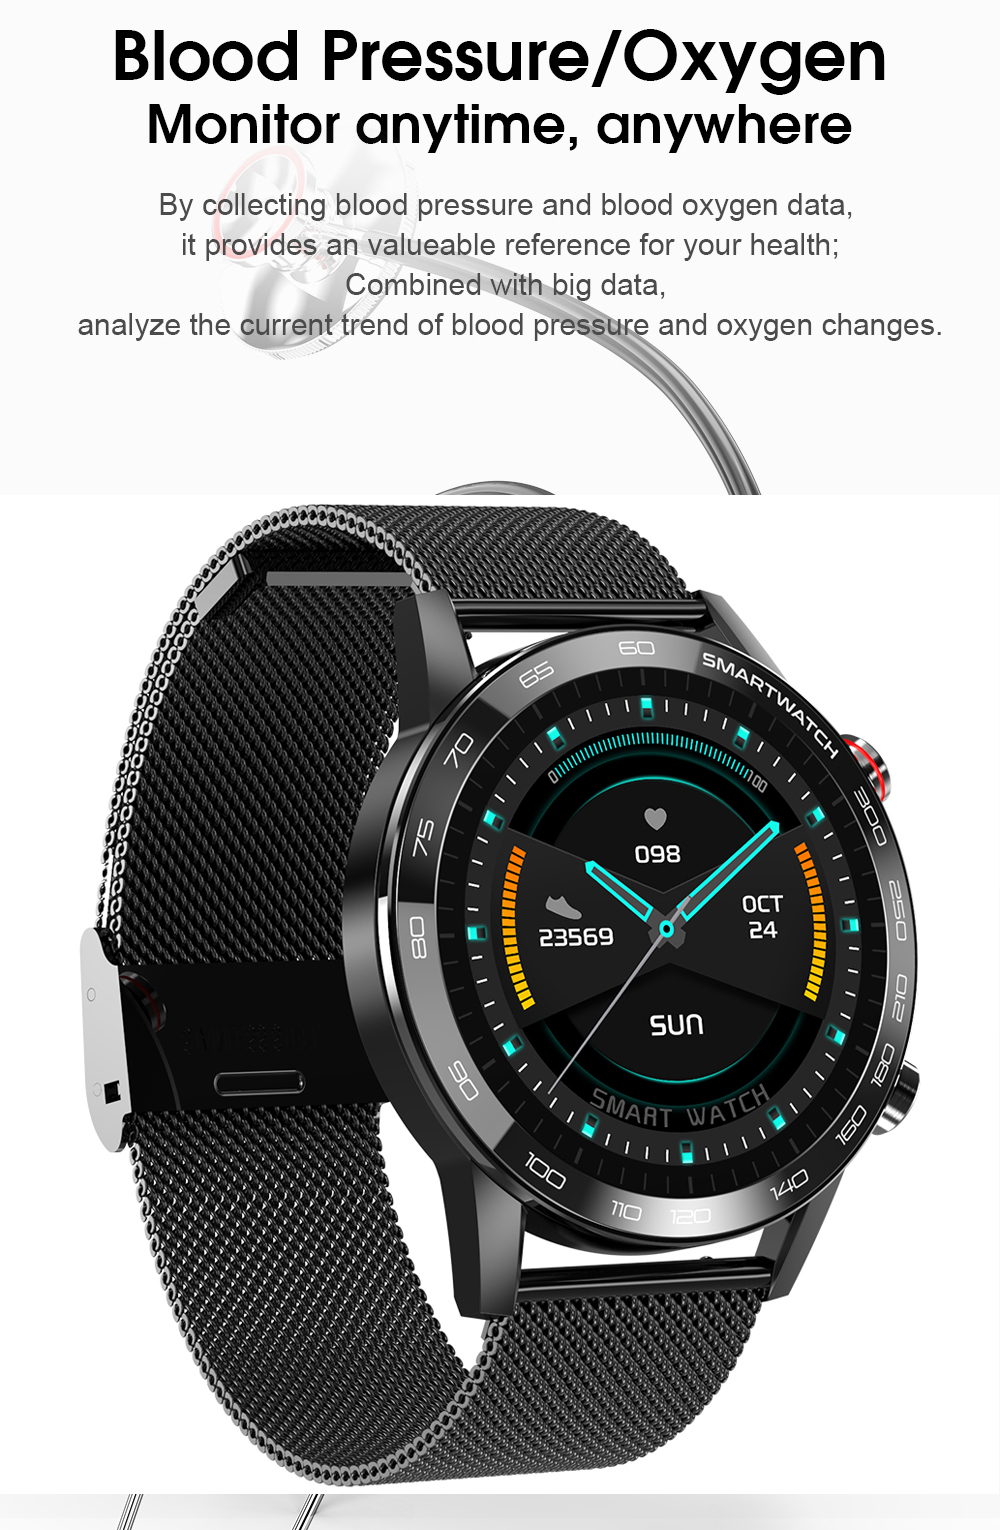 H8ac0bed4f4b6443a81f6269f2e9a117bQ Reloj Inteligente Hombre Smartwatch Ecg Ppg IP68 Smarthwatch Men Full Touch Smart Watch 2020 For Huawei Xiaomi Android Apple IOS